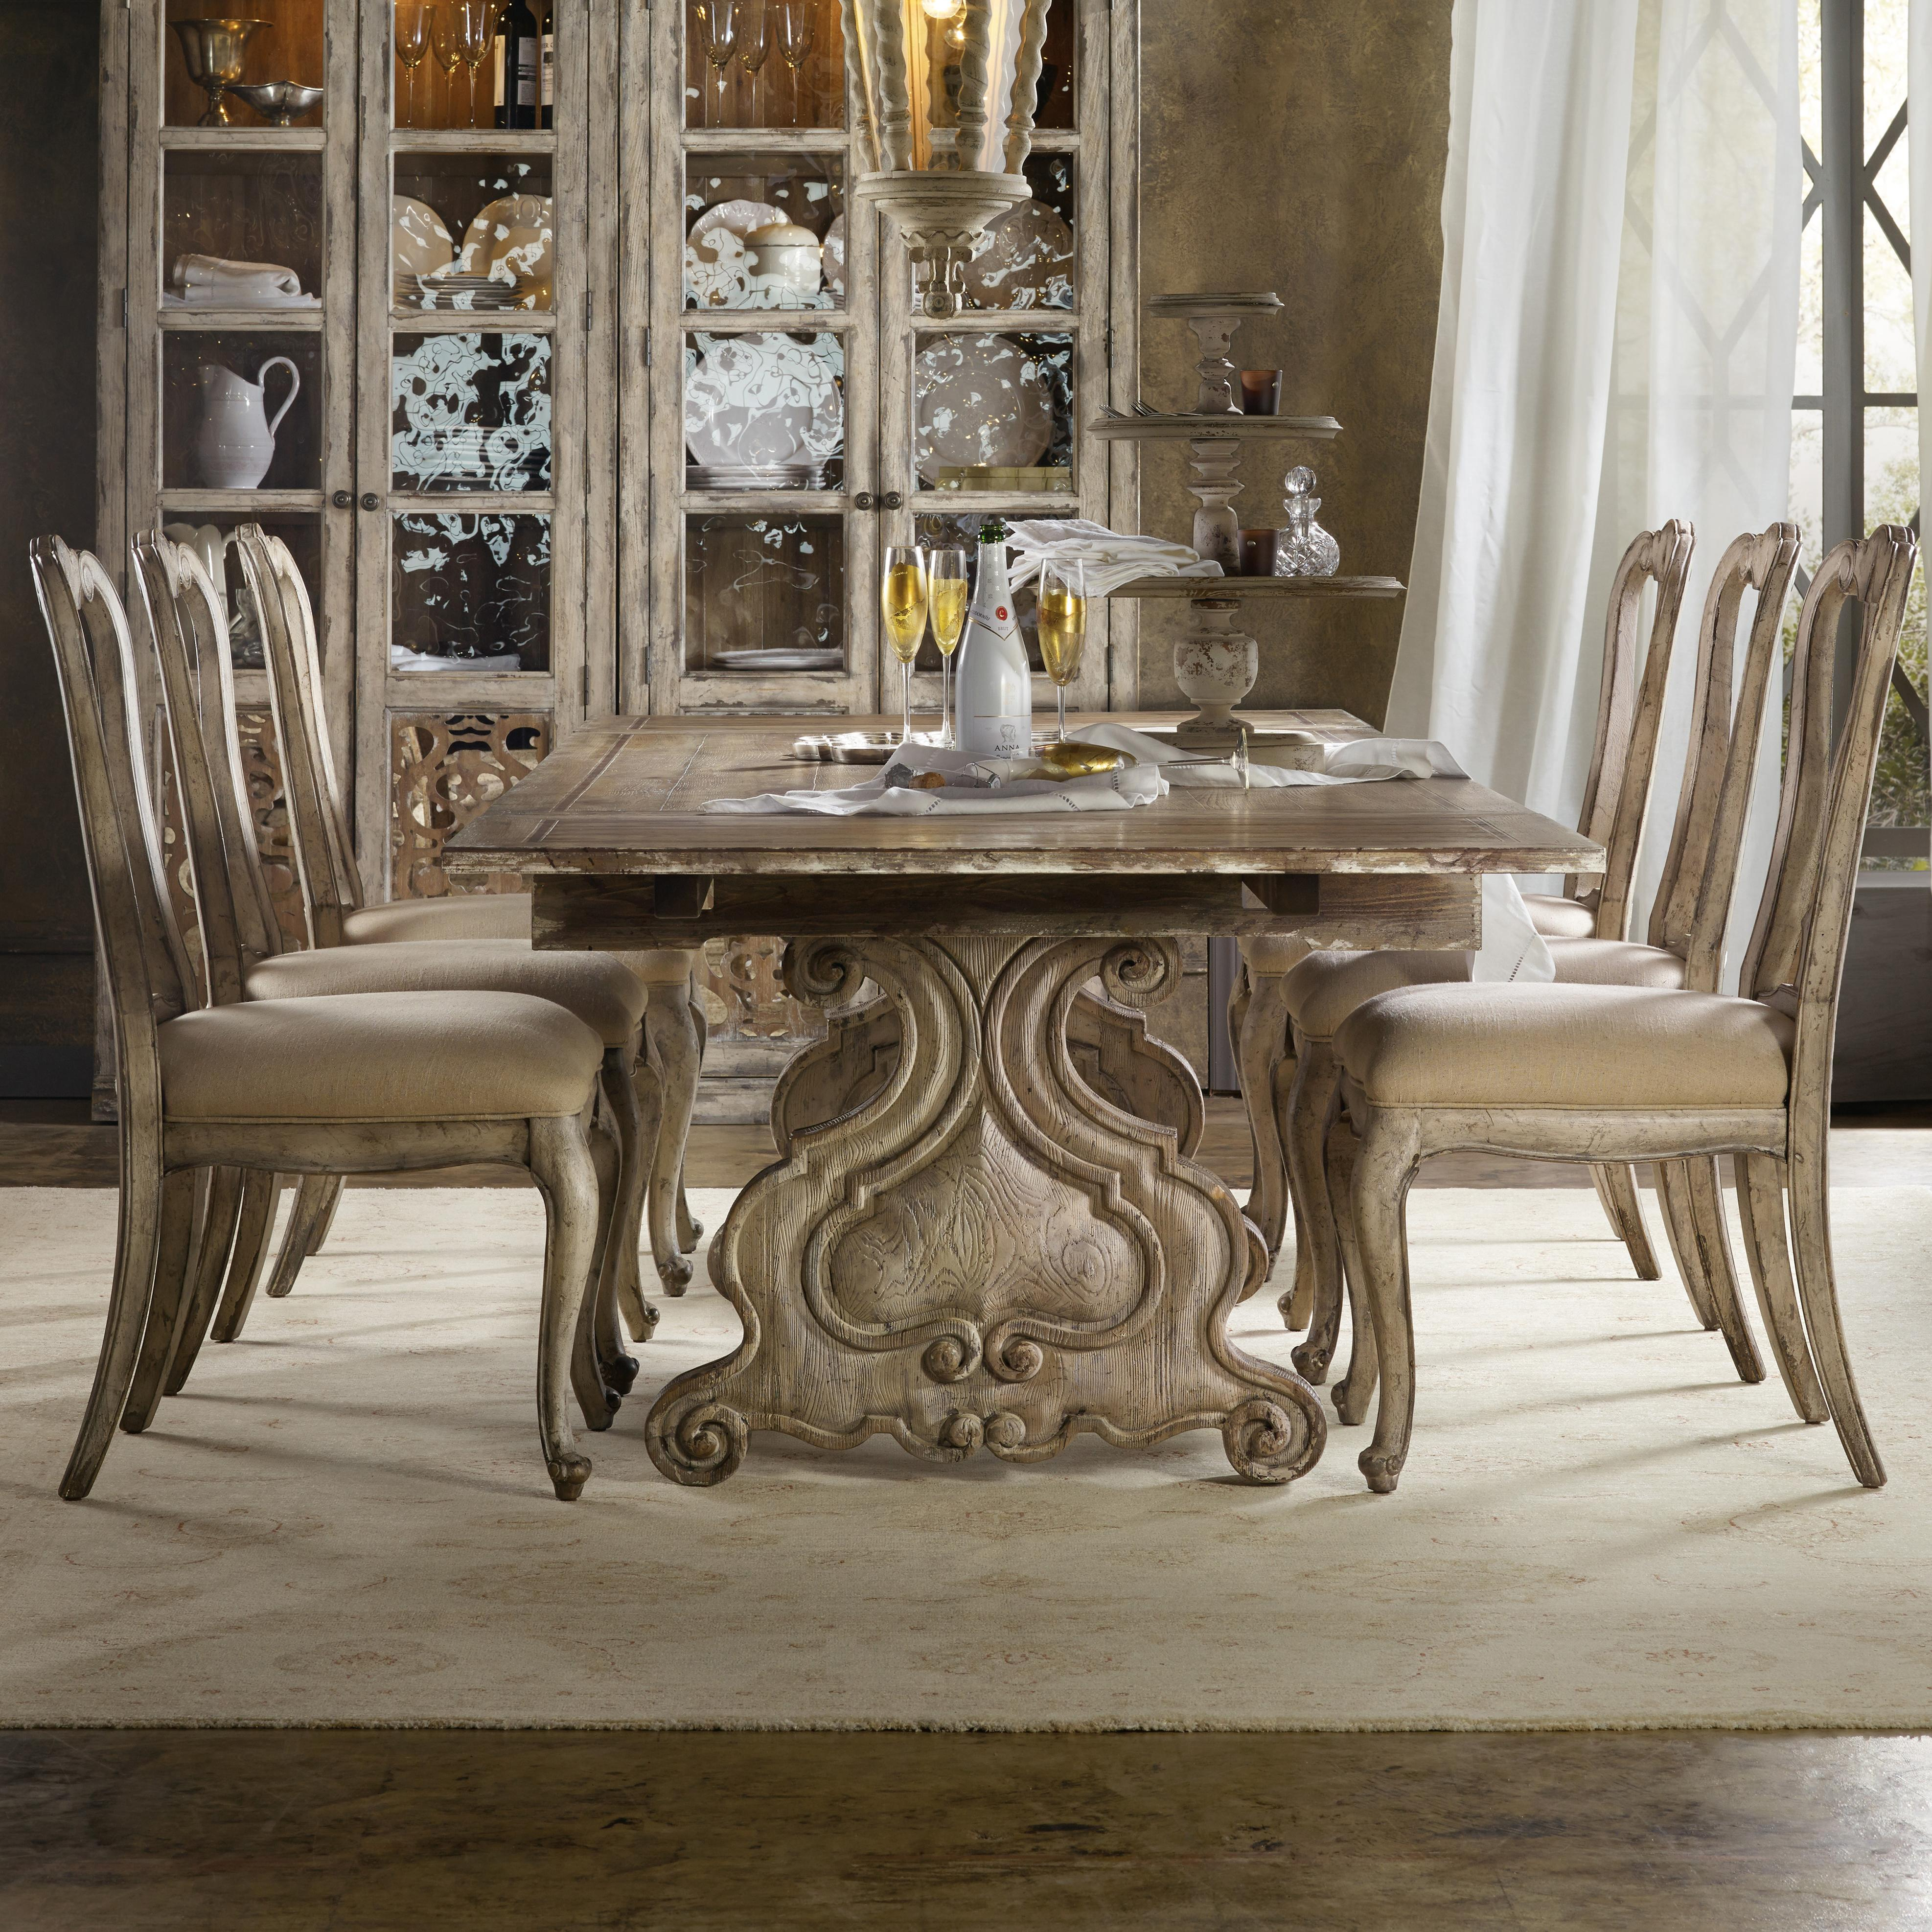 Chatelet 7 Piece Dining Set by Hooker Furniture at Alison Craig Home Furnishings